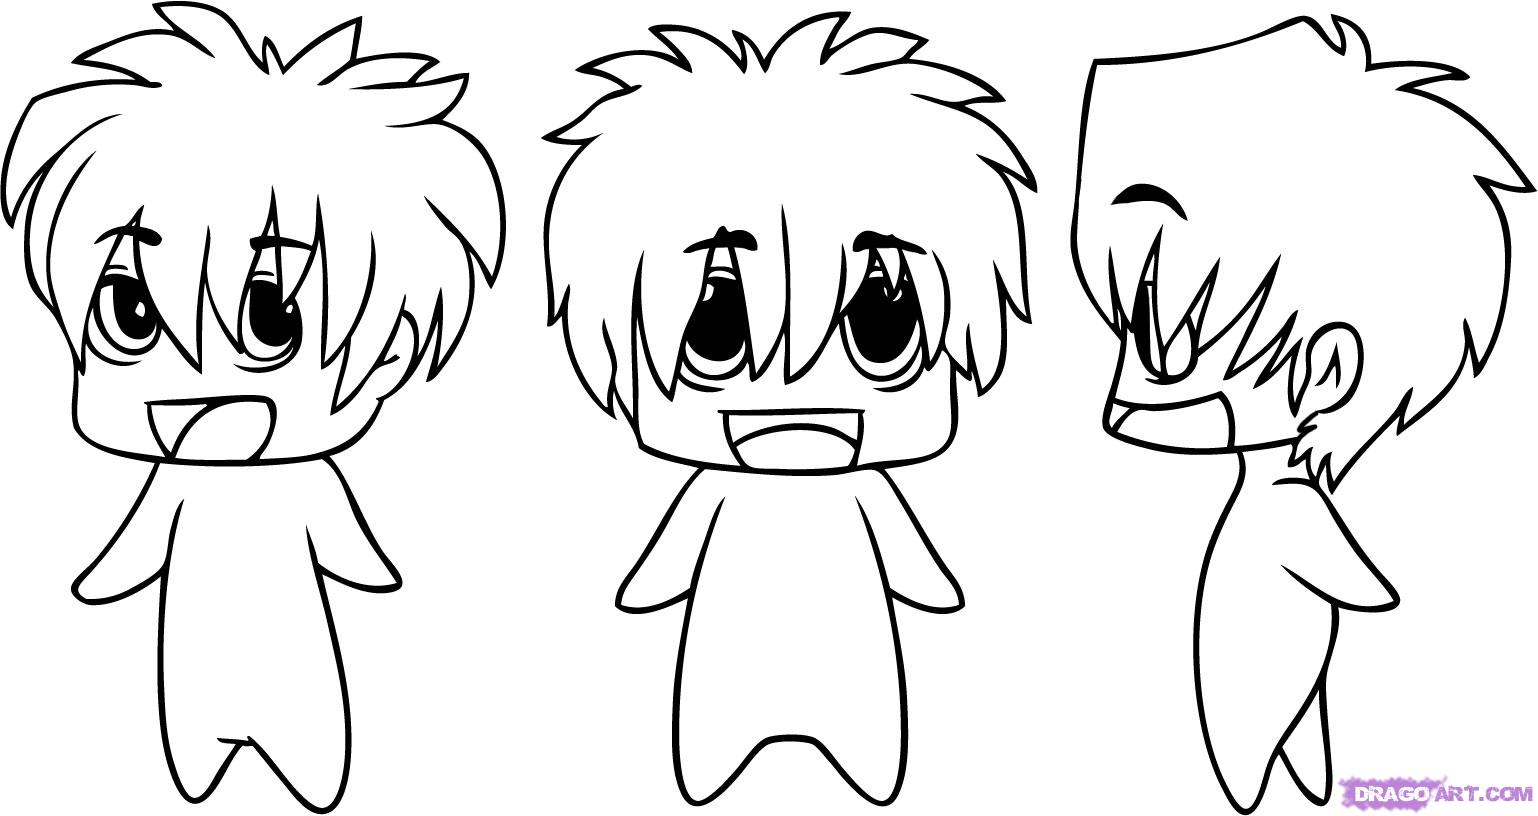 1538x816 Easiest Anime To Draw Anime Simple Drawing